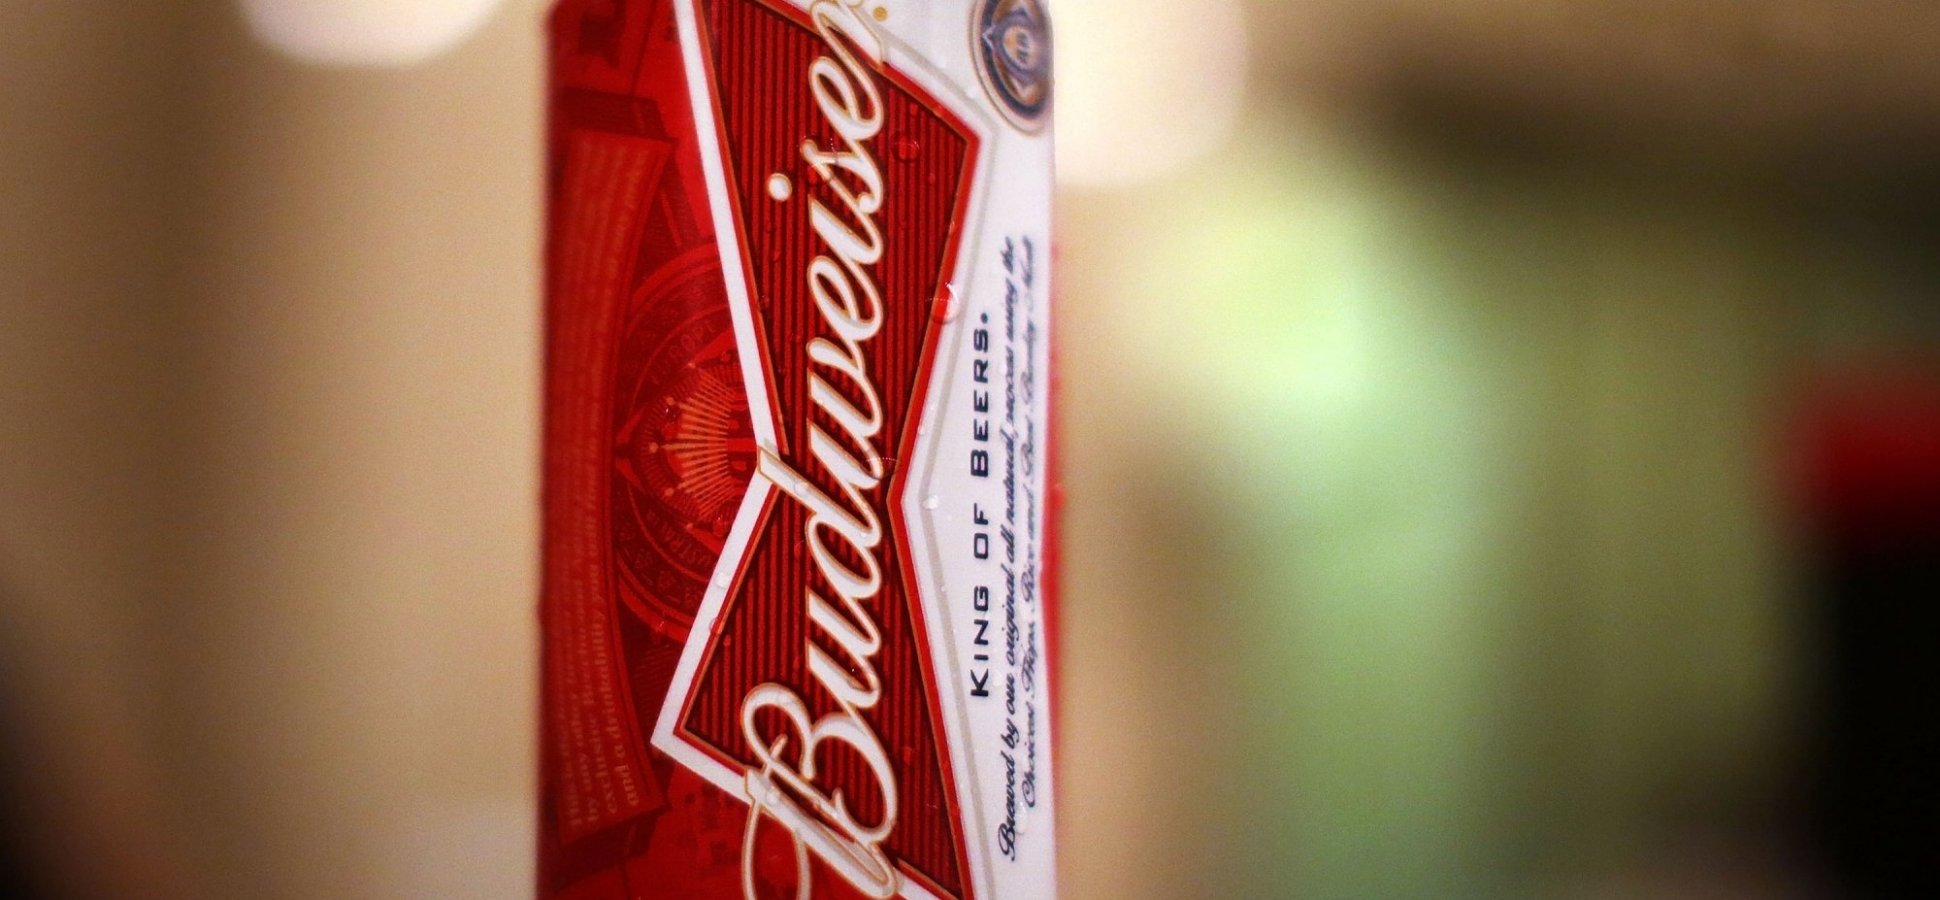 Brands Love To Adopt Father's Day As Their Own. But Then Budweiser Did Something Truly Different